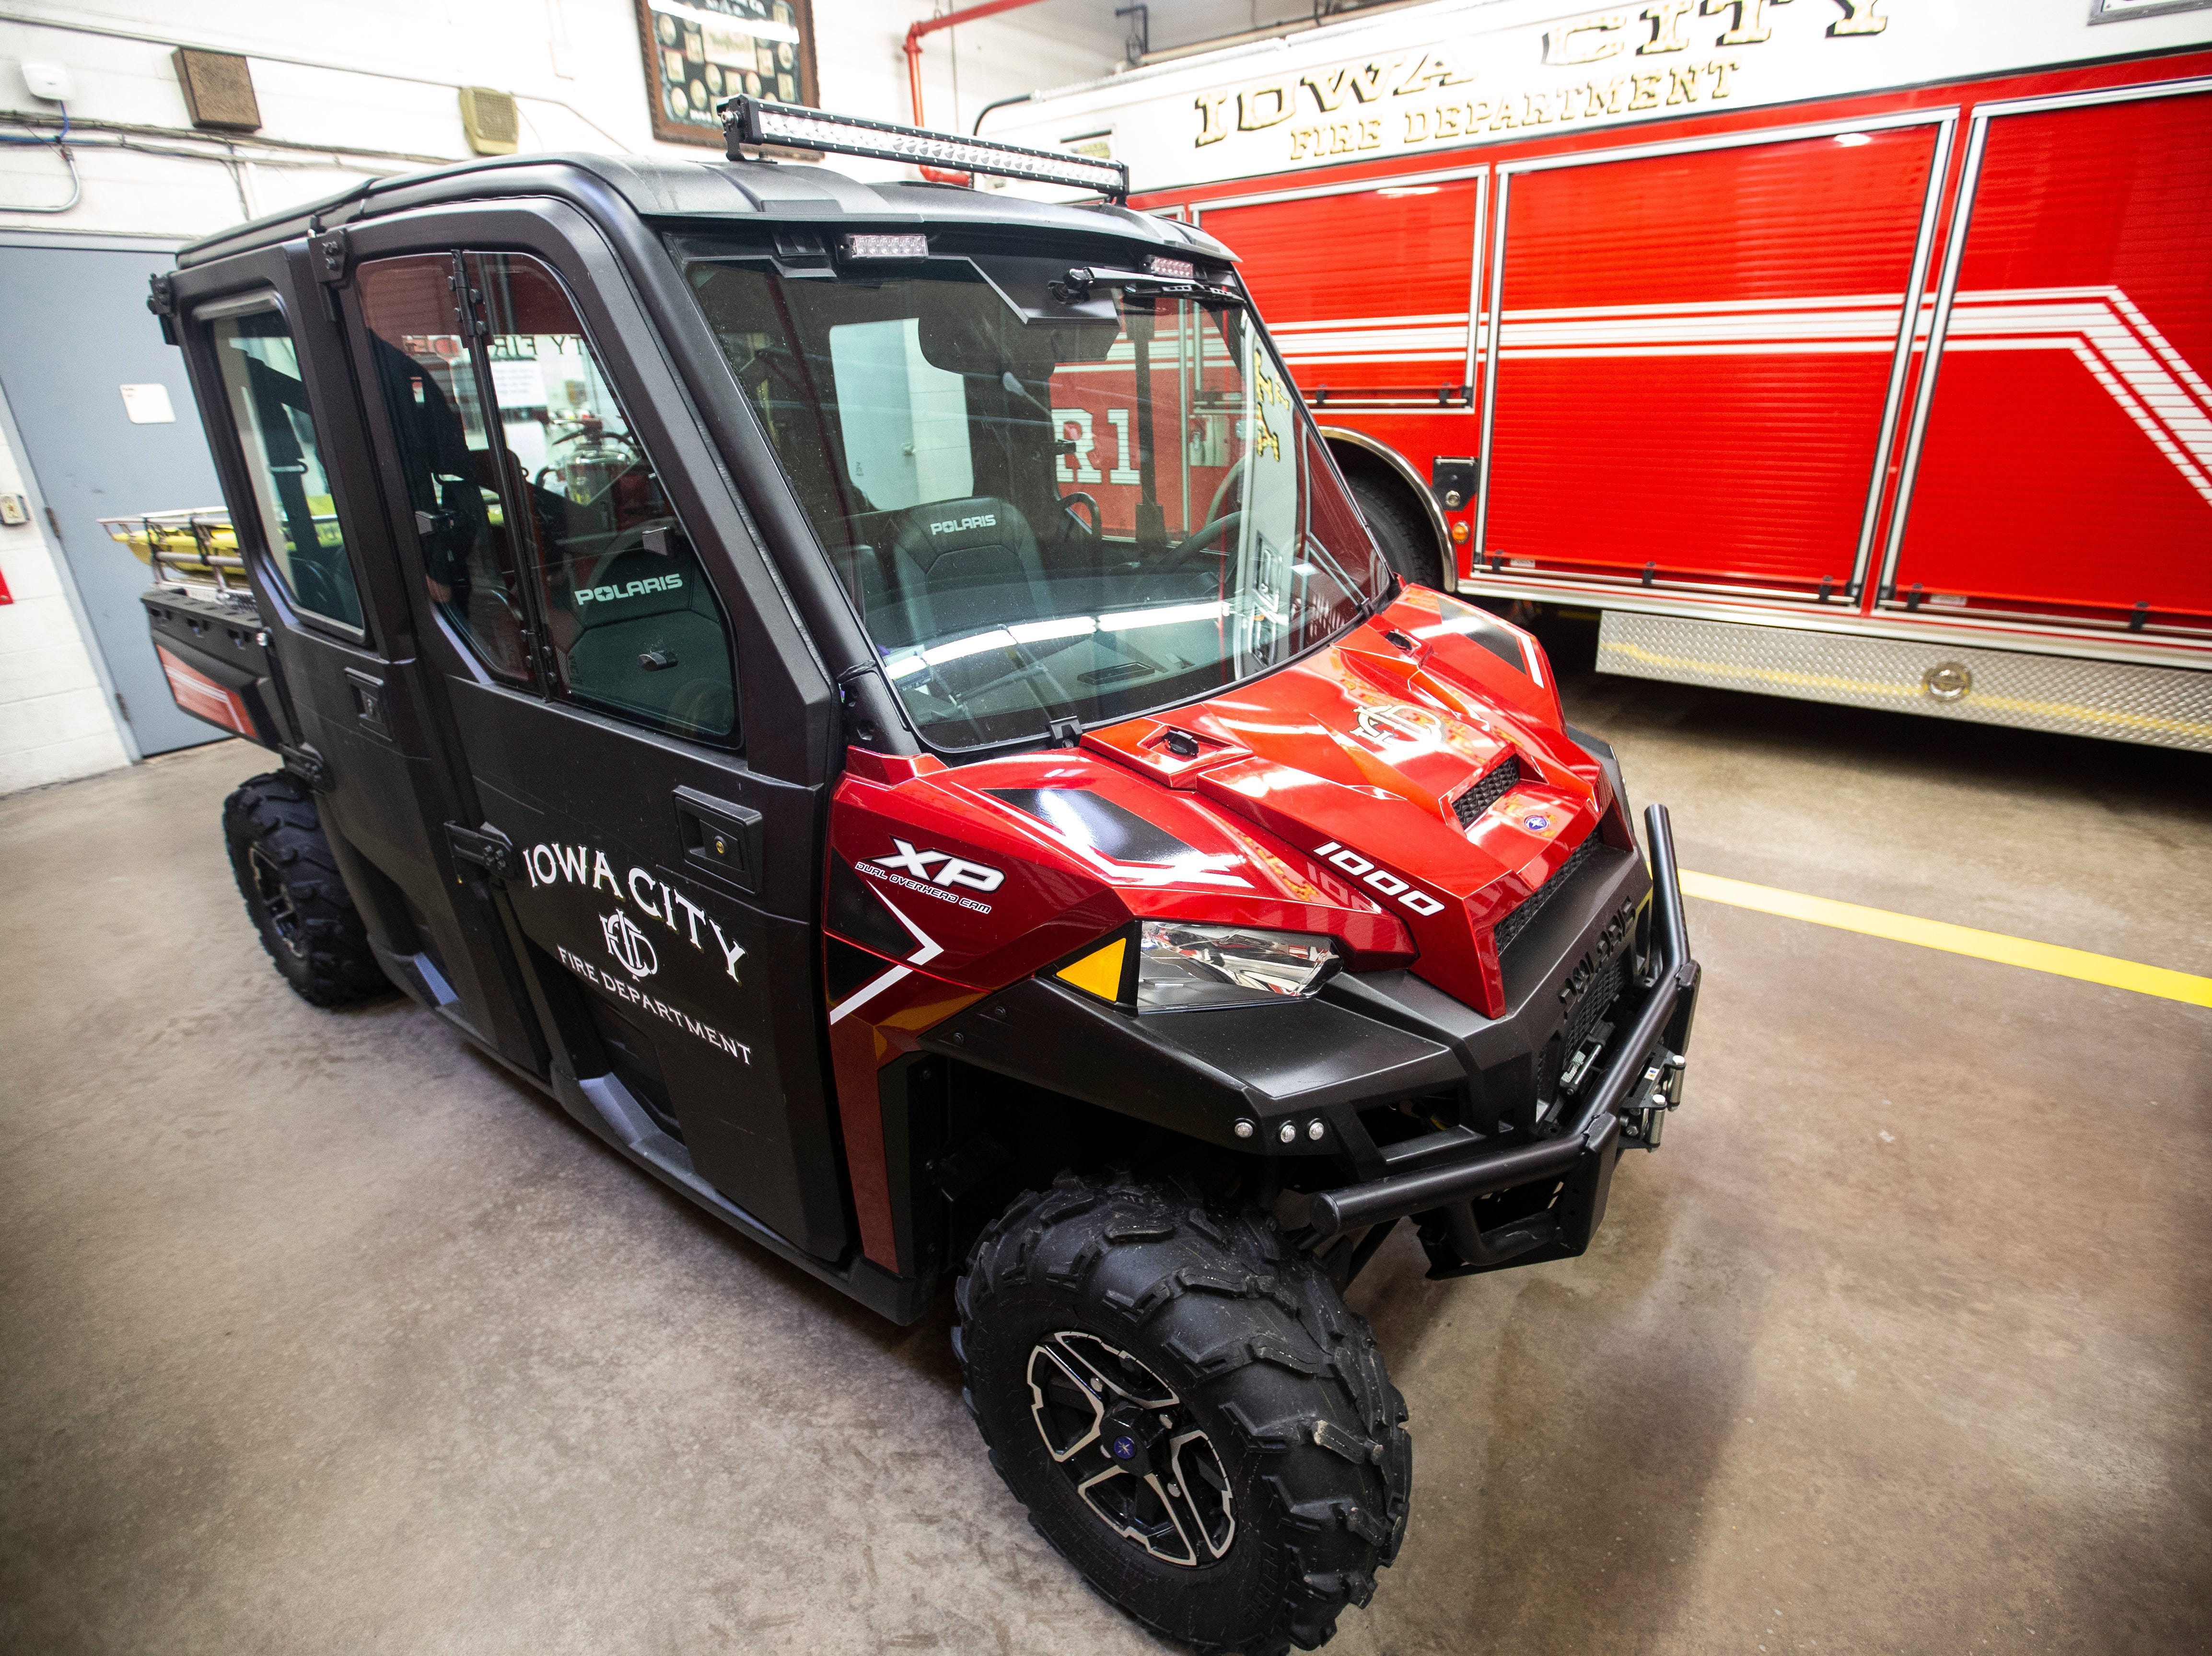 A Polaris Ranger XP sits in the garage on Thursday, March 7, 2019, inside Fire Station No. 1, at 10 South Gilbert Street in downtown Iowa City, Iowa.